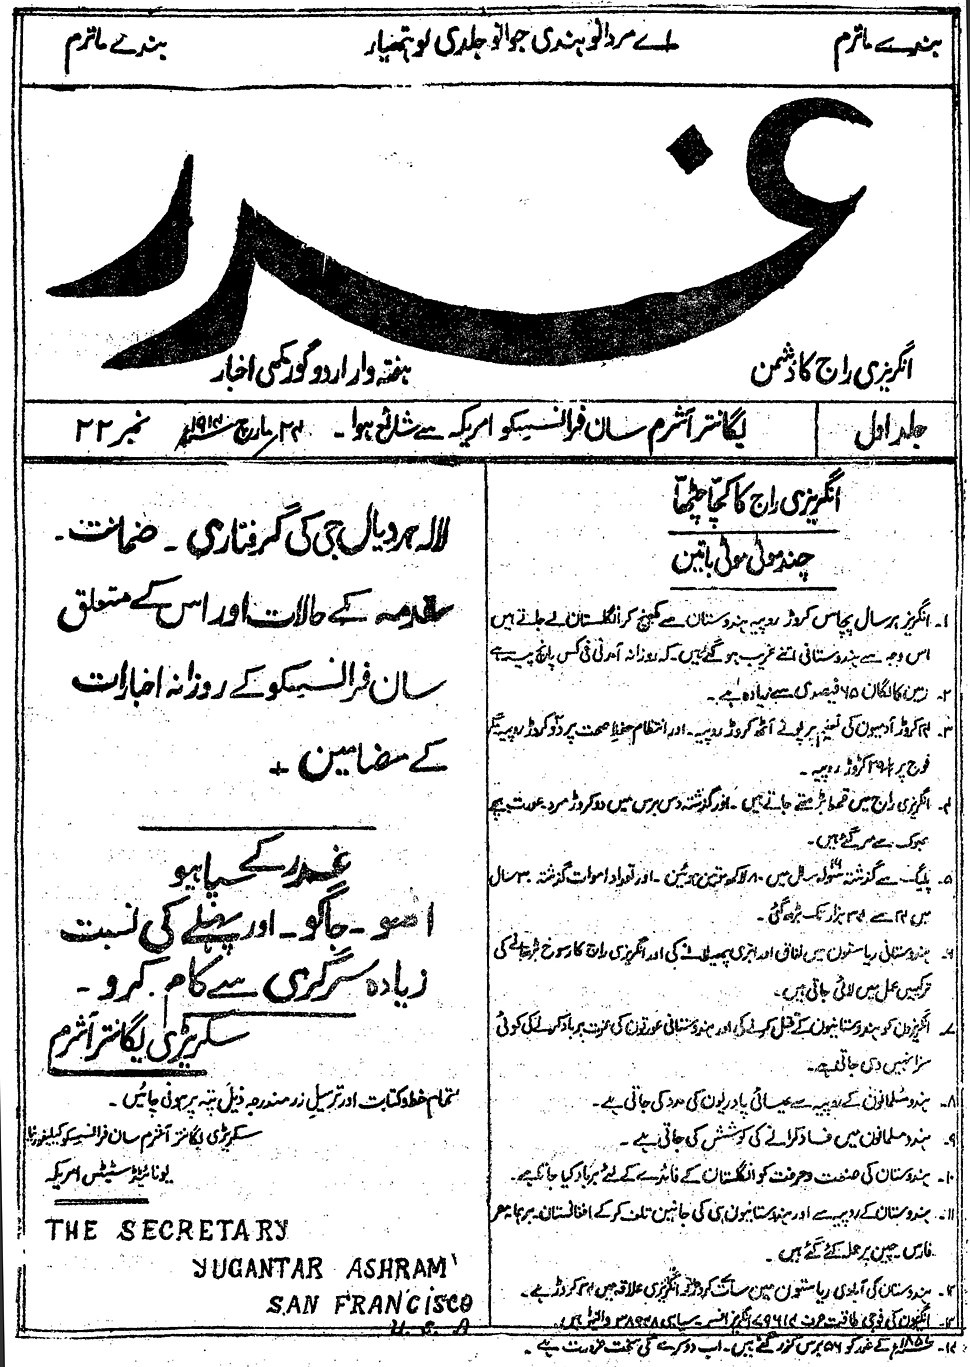 Hindustan Ghadar article detailing arrest of Lala Hardayal (March 24, 1914)